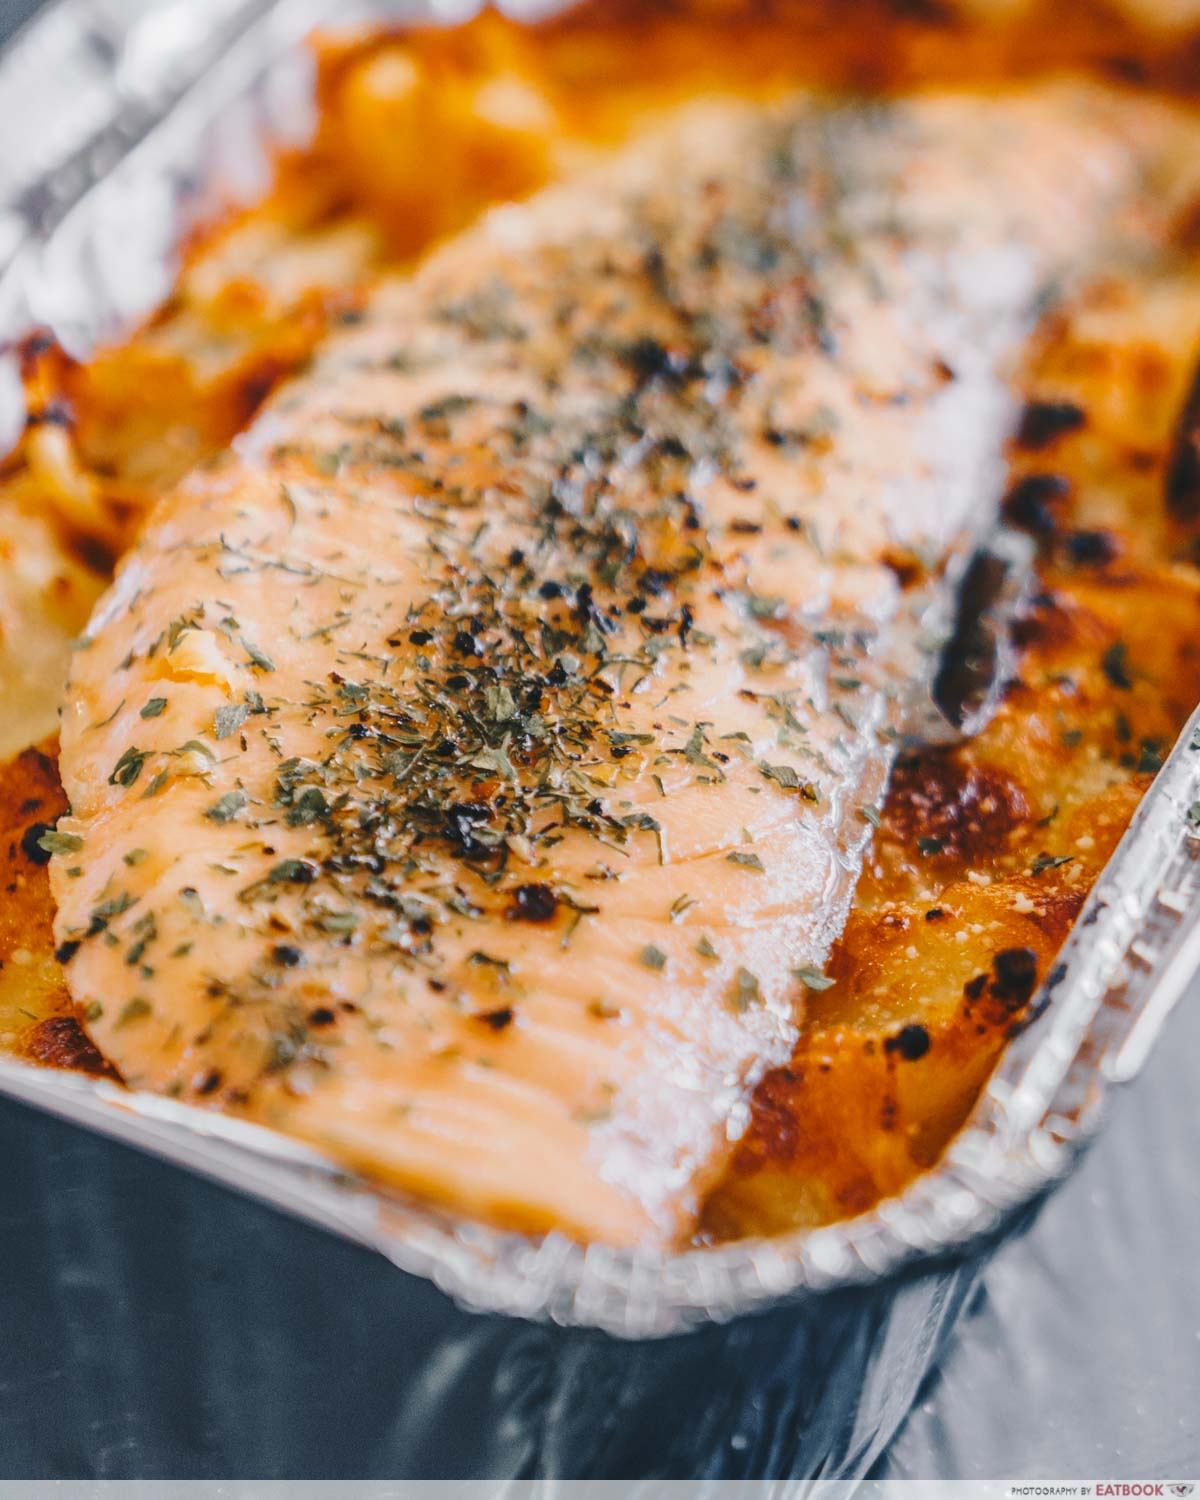 ButterNut - salmon on baked mea;